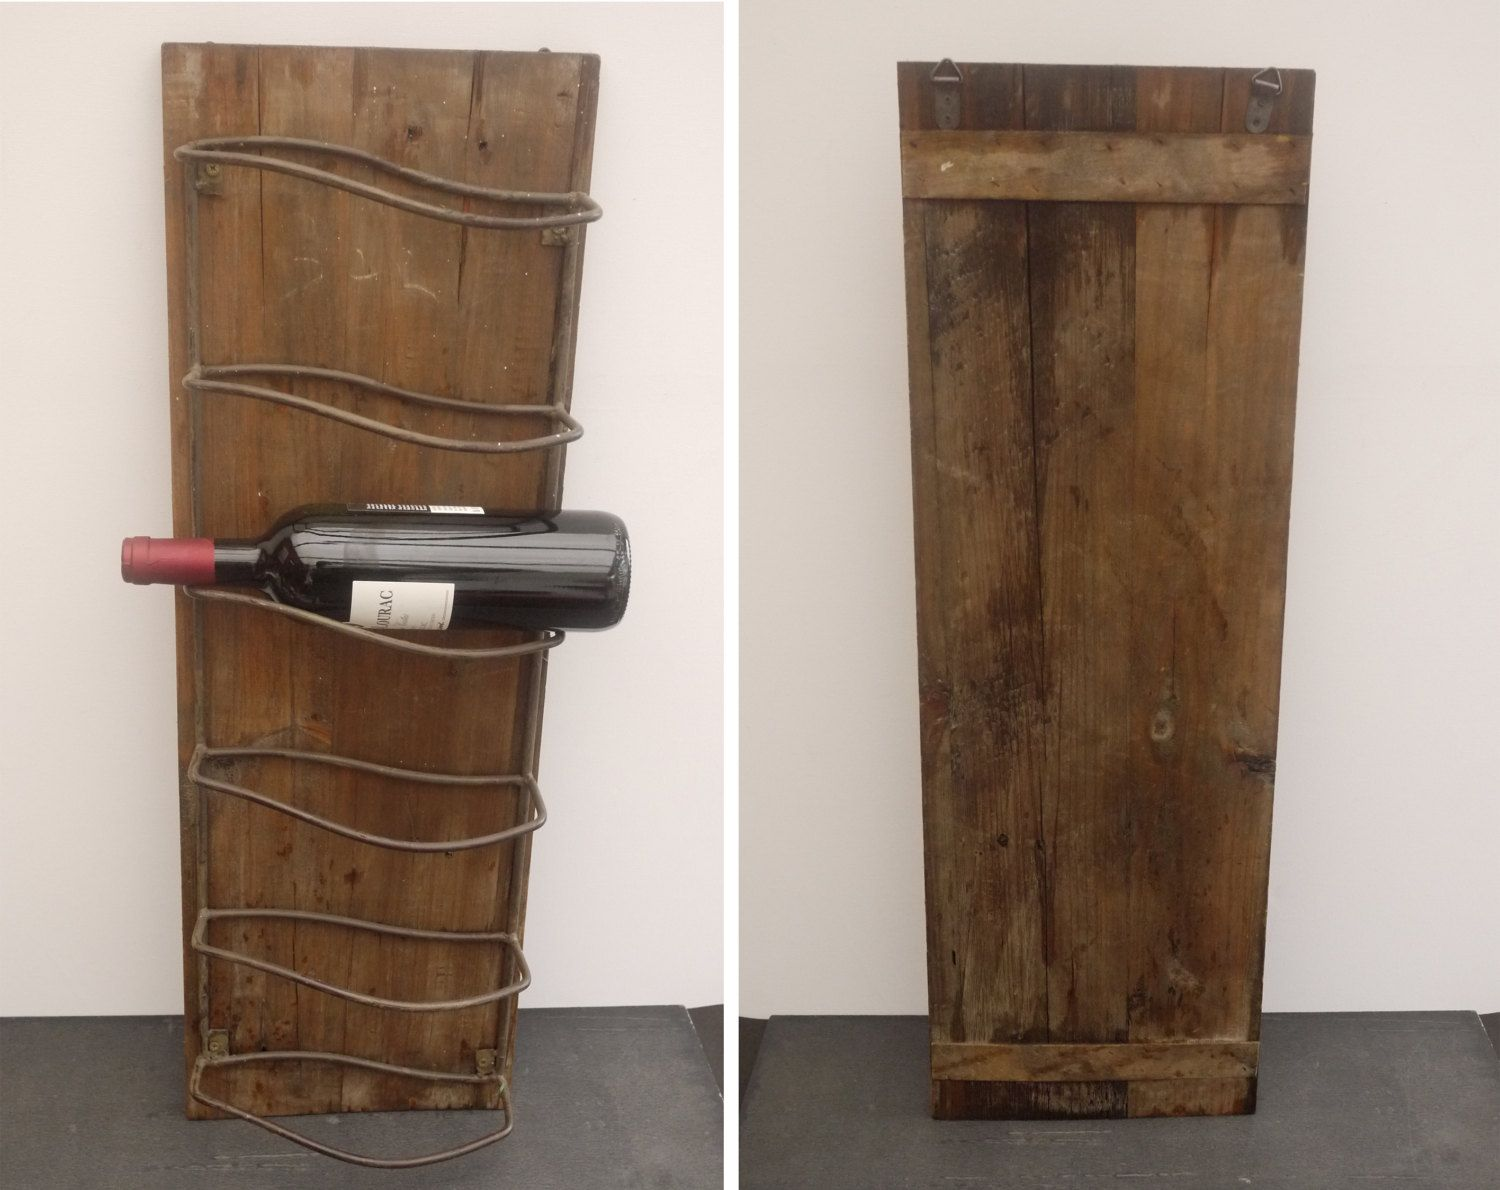 Porte Bouteille Mural Bois French Wall Mounted Wine Rack Wood 6 Bottles Rack Holder